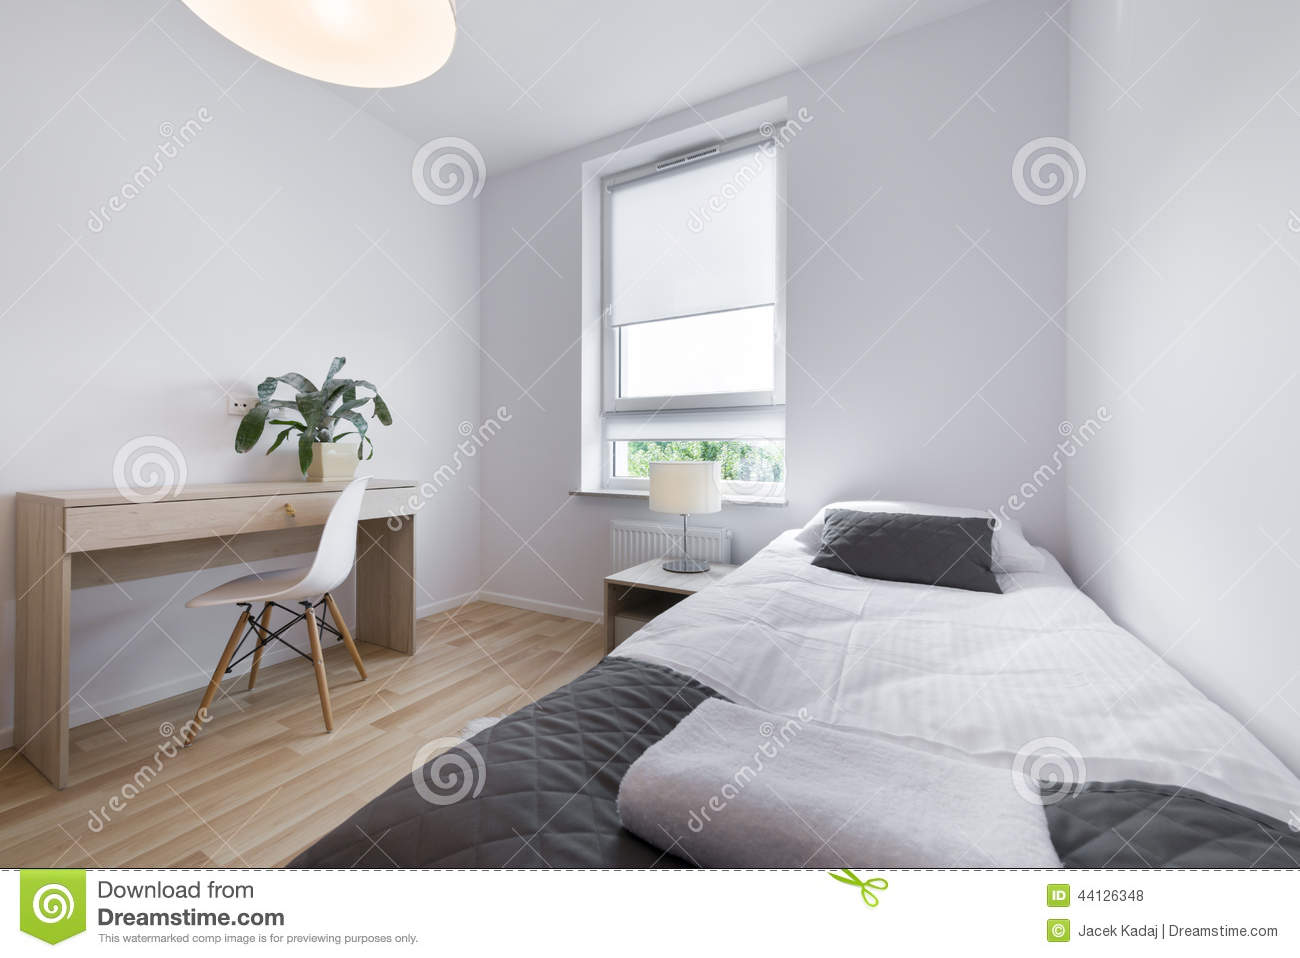 Small modern sleeping room interior design stock photo for Sleeping room interior design